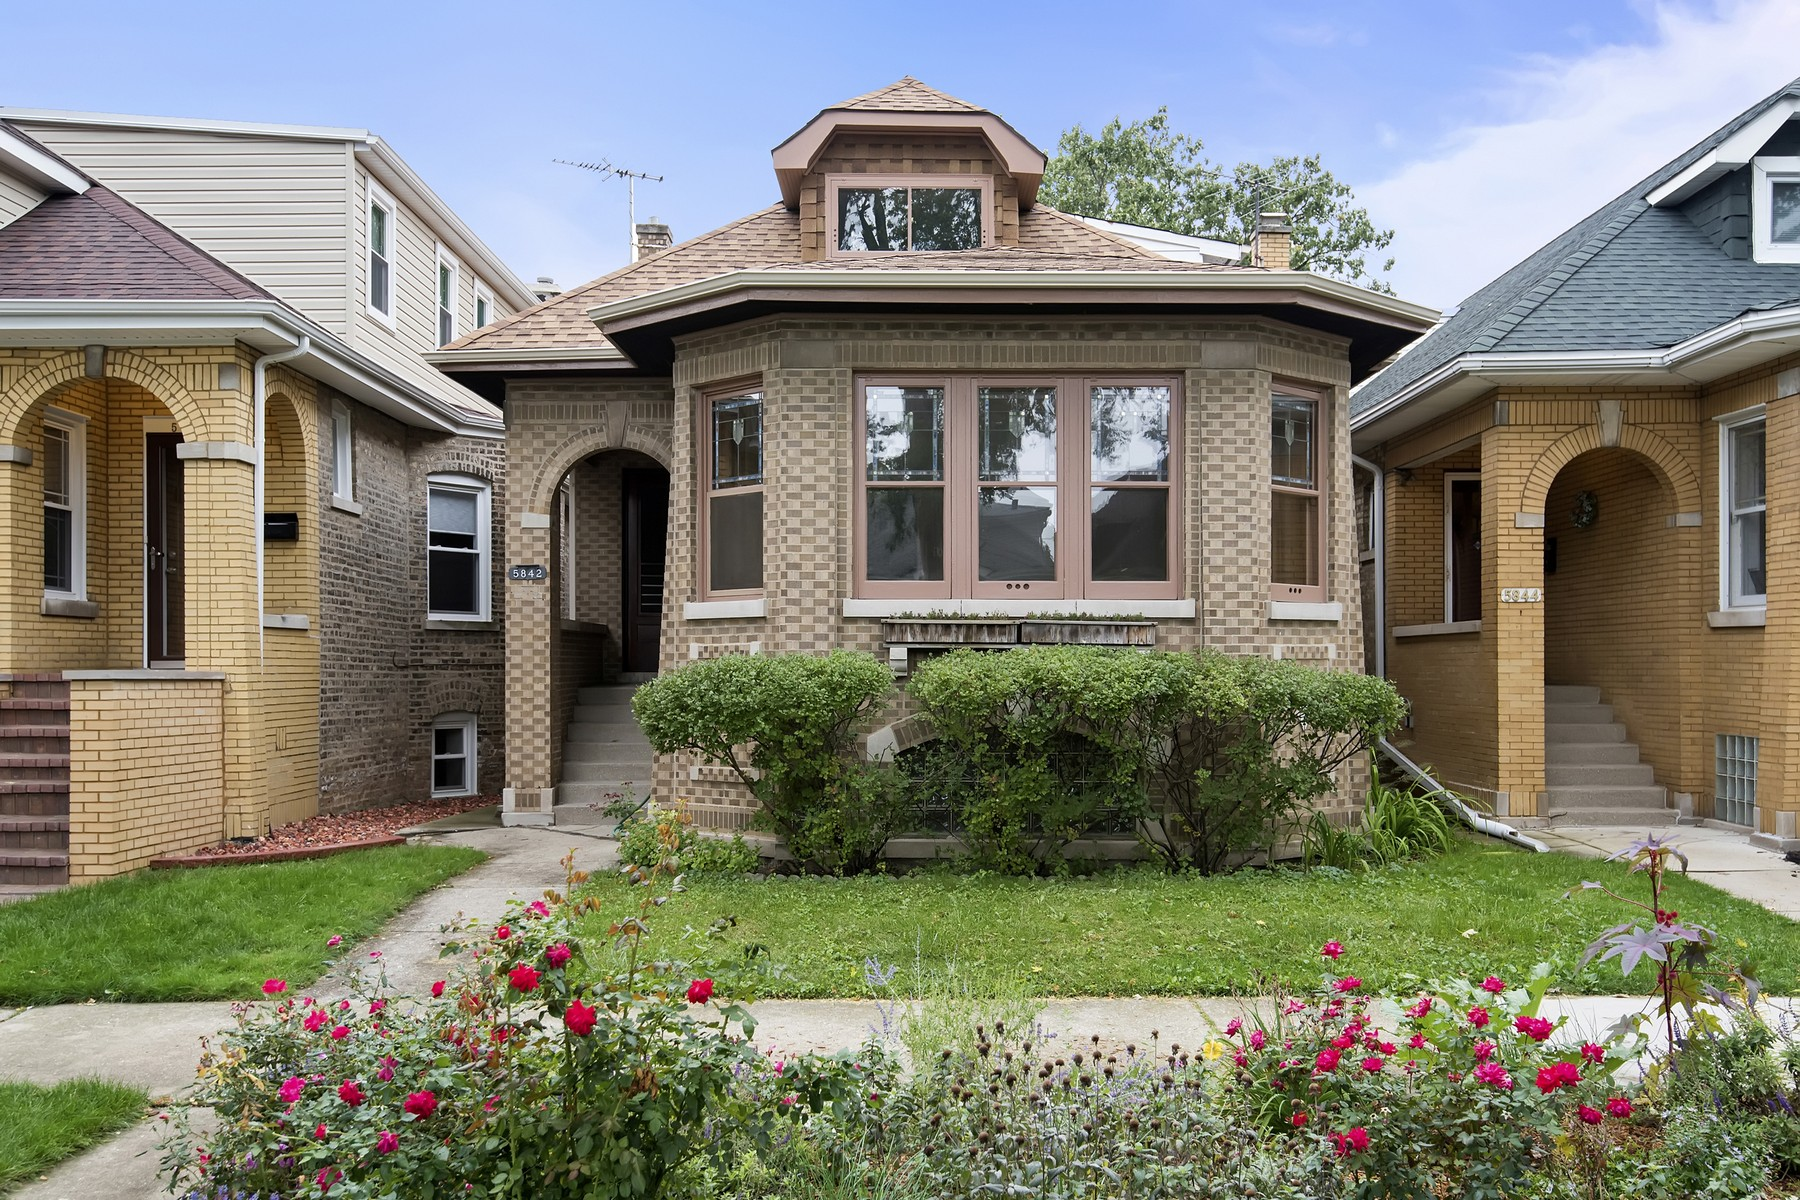 Single Family Home for Sale at Classic Chicago Bungalow 5842 N Washtenaw Avenue Lincoln Square, Chicago, Illinois 60659 United States